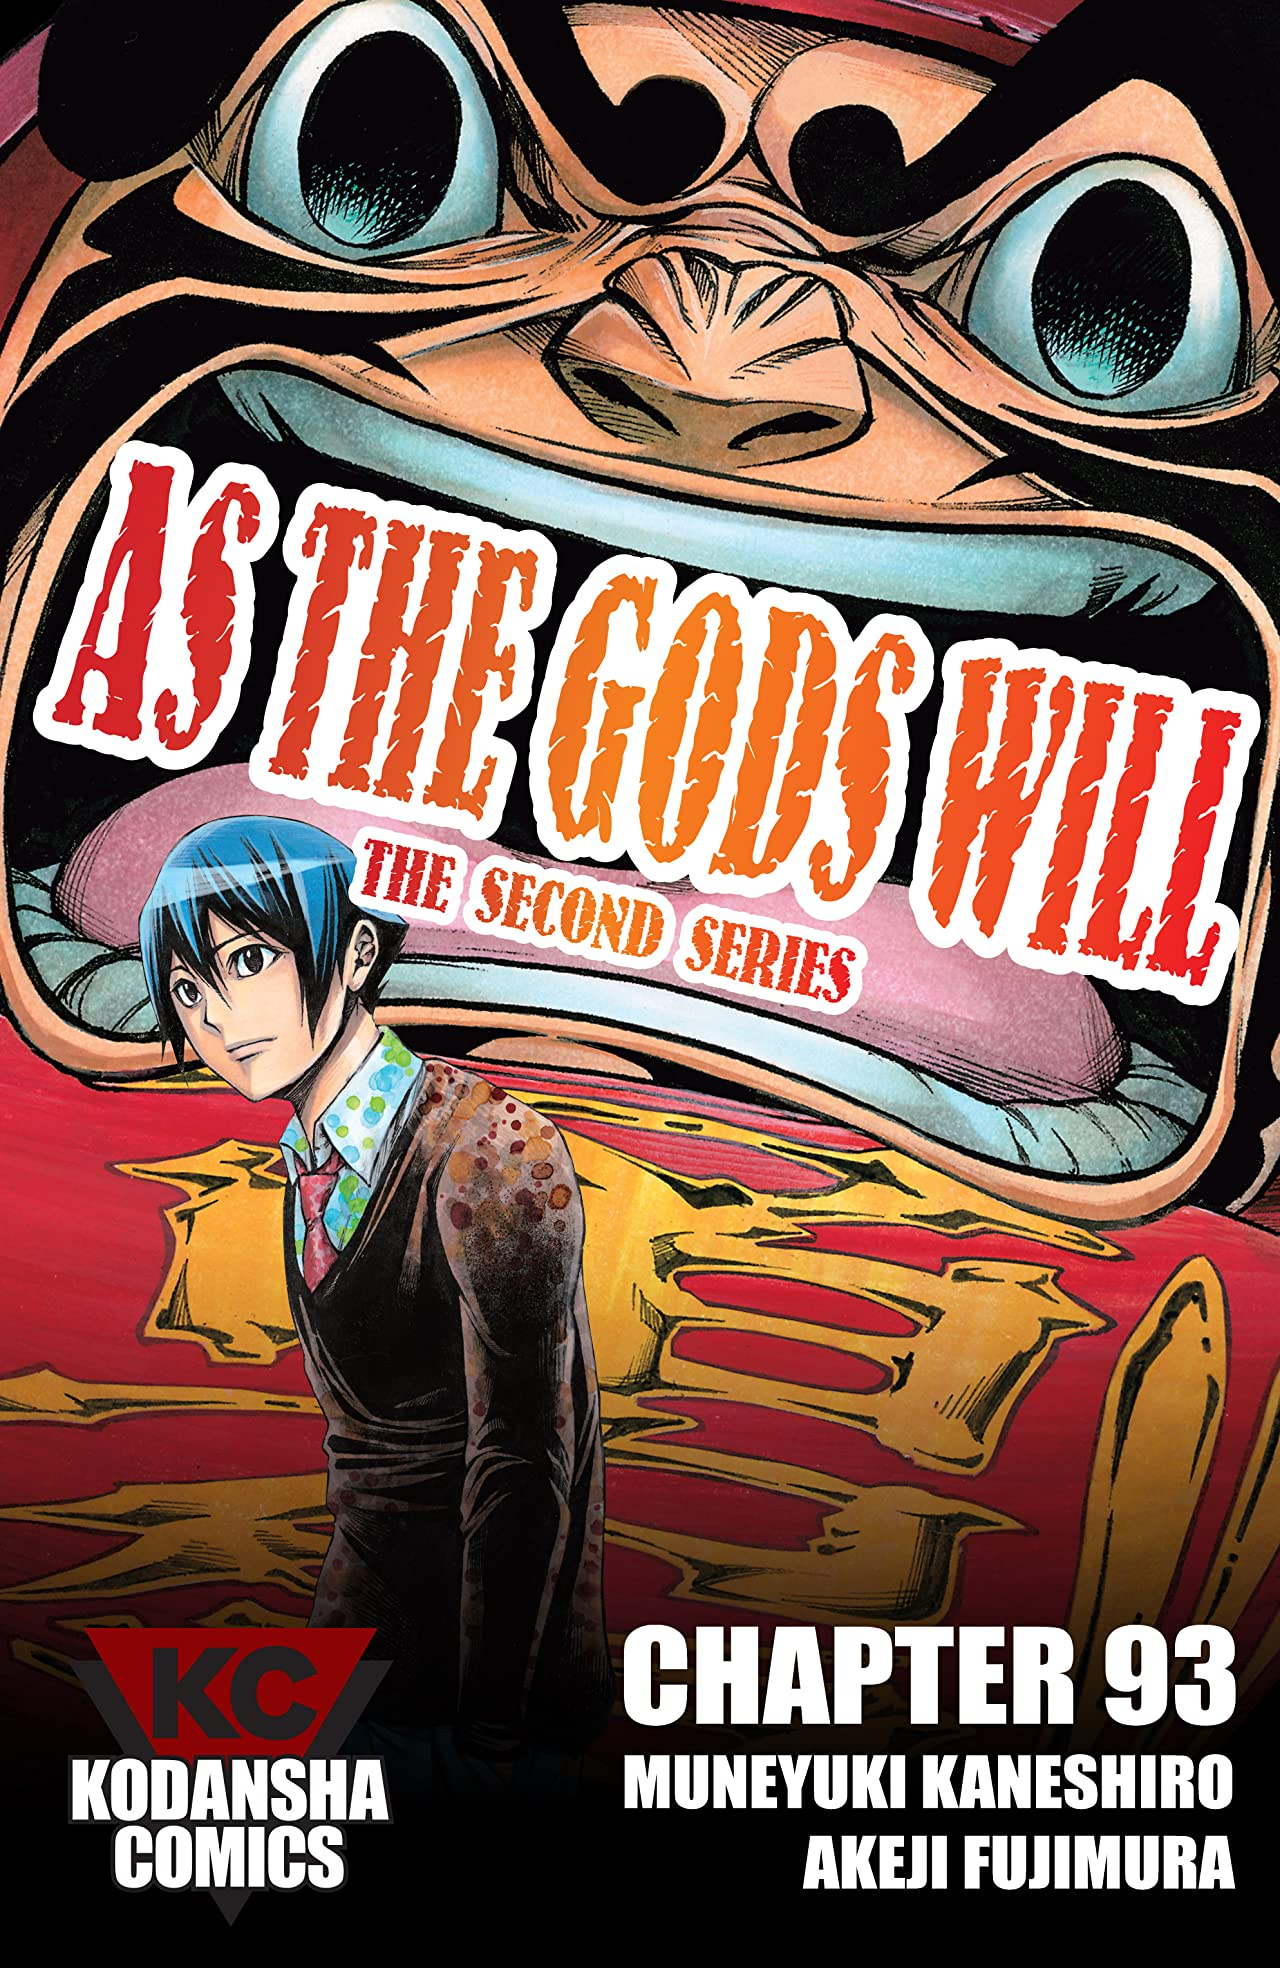 As The Gods Will: The Second Series #93